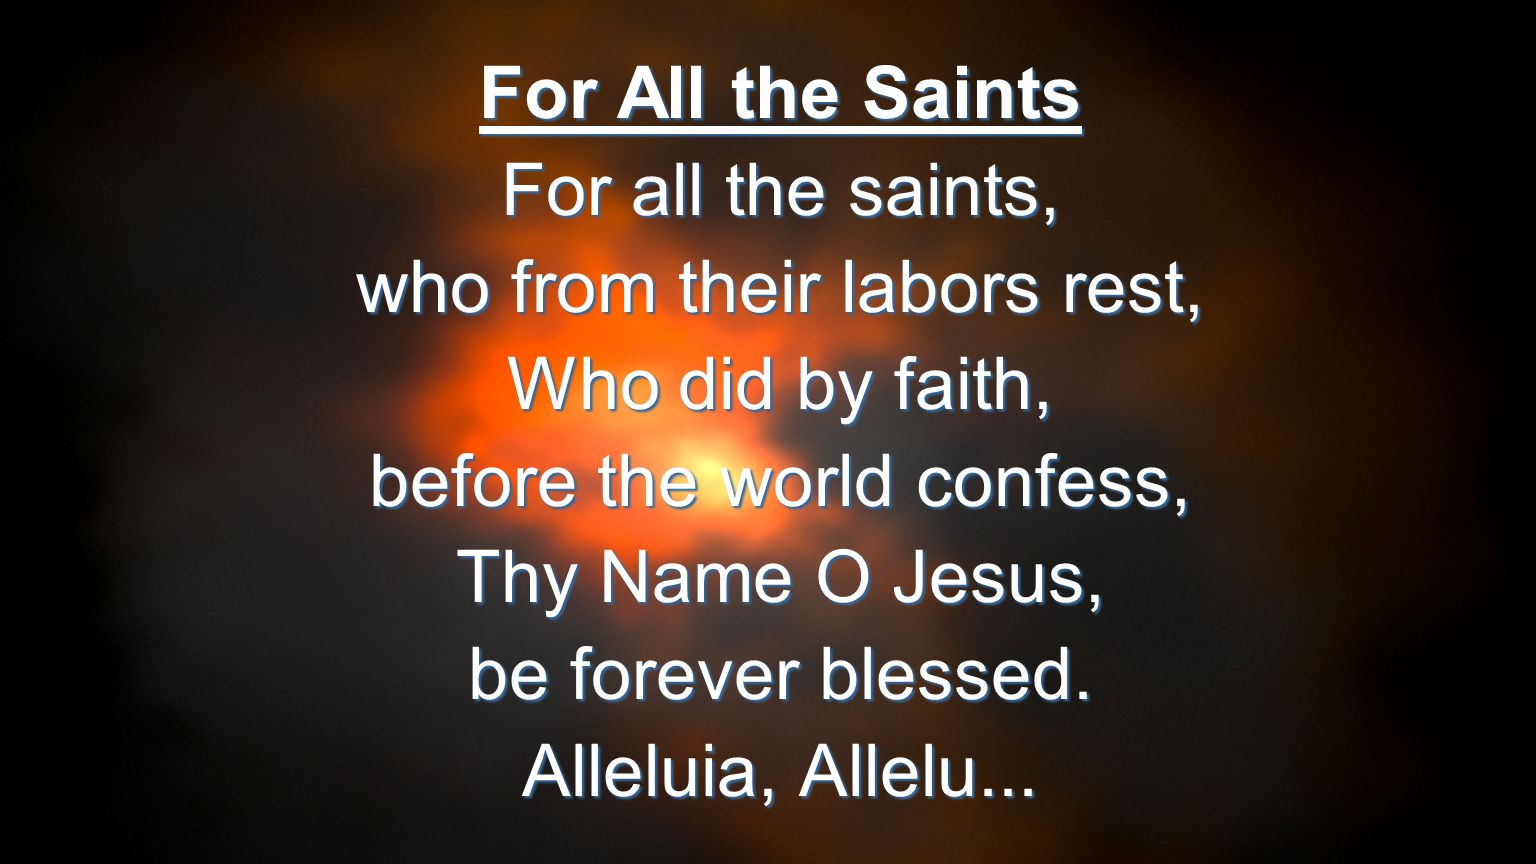 For All the Saints For all the saints, who from their labors rest, Who did by faith, before the world confess, Thy Name O Jesus, be forever blessed. A